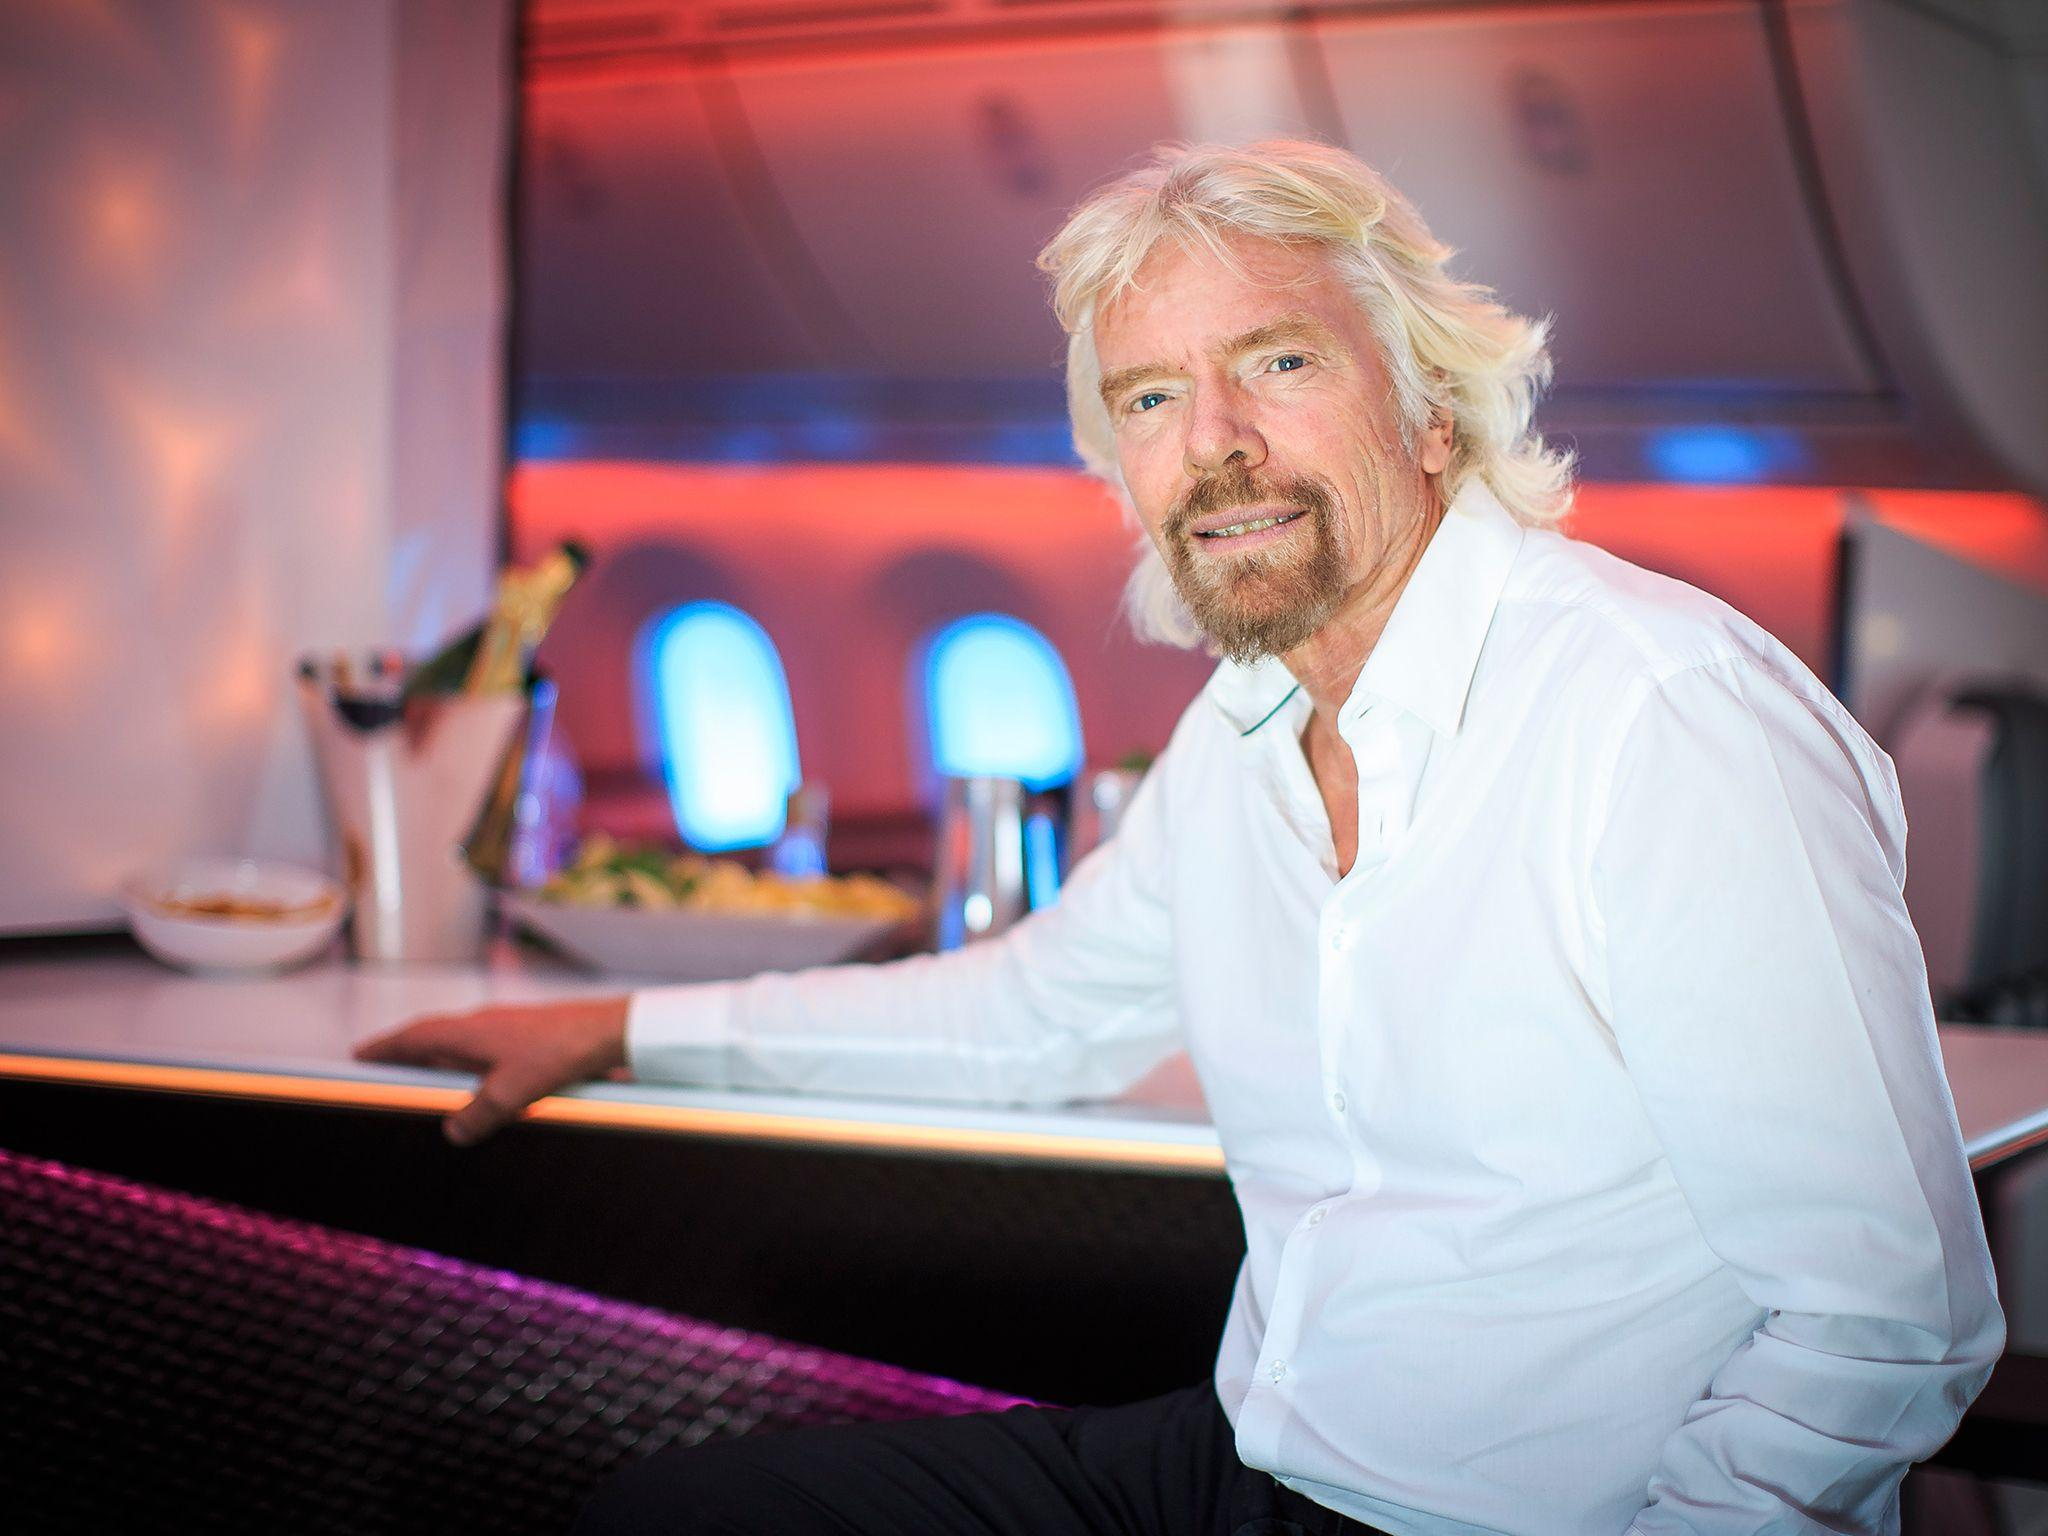 Richard Branson interview: Virgin chief on how age is moderating ...